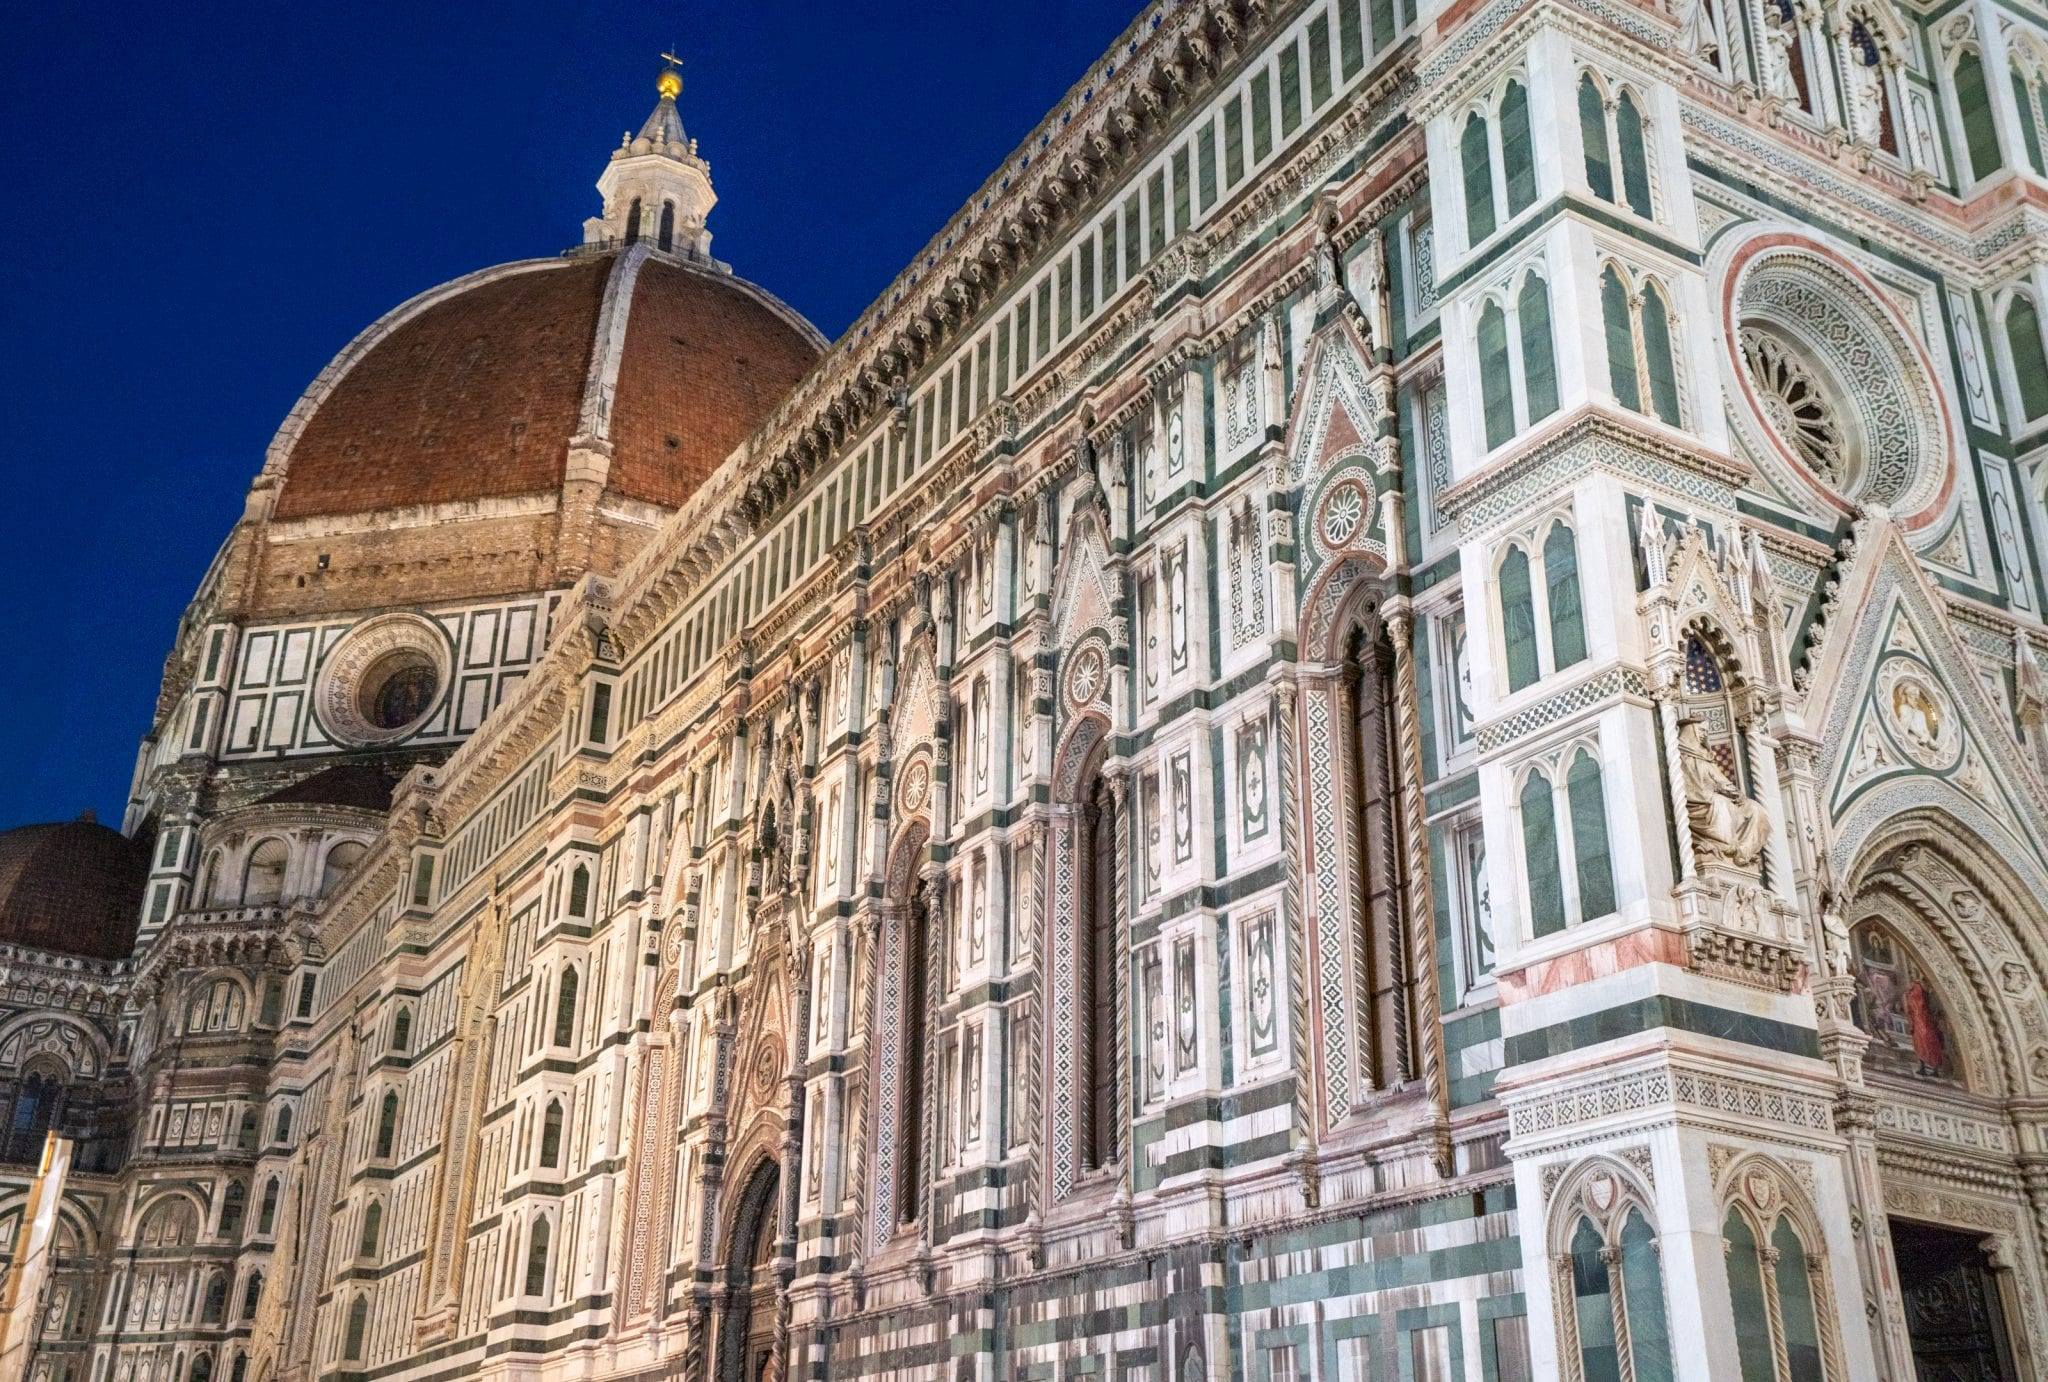 Photo of the side of Florence's Duomo at blue hour with cupola in the background. Checking out the Duomo is one of the best things to do in Florence at night